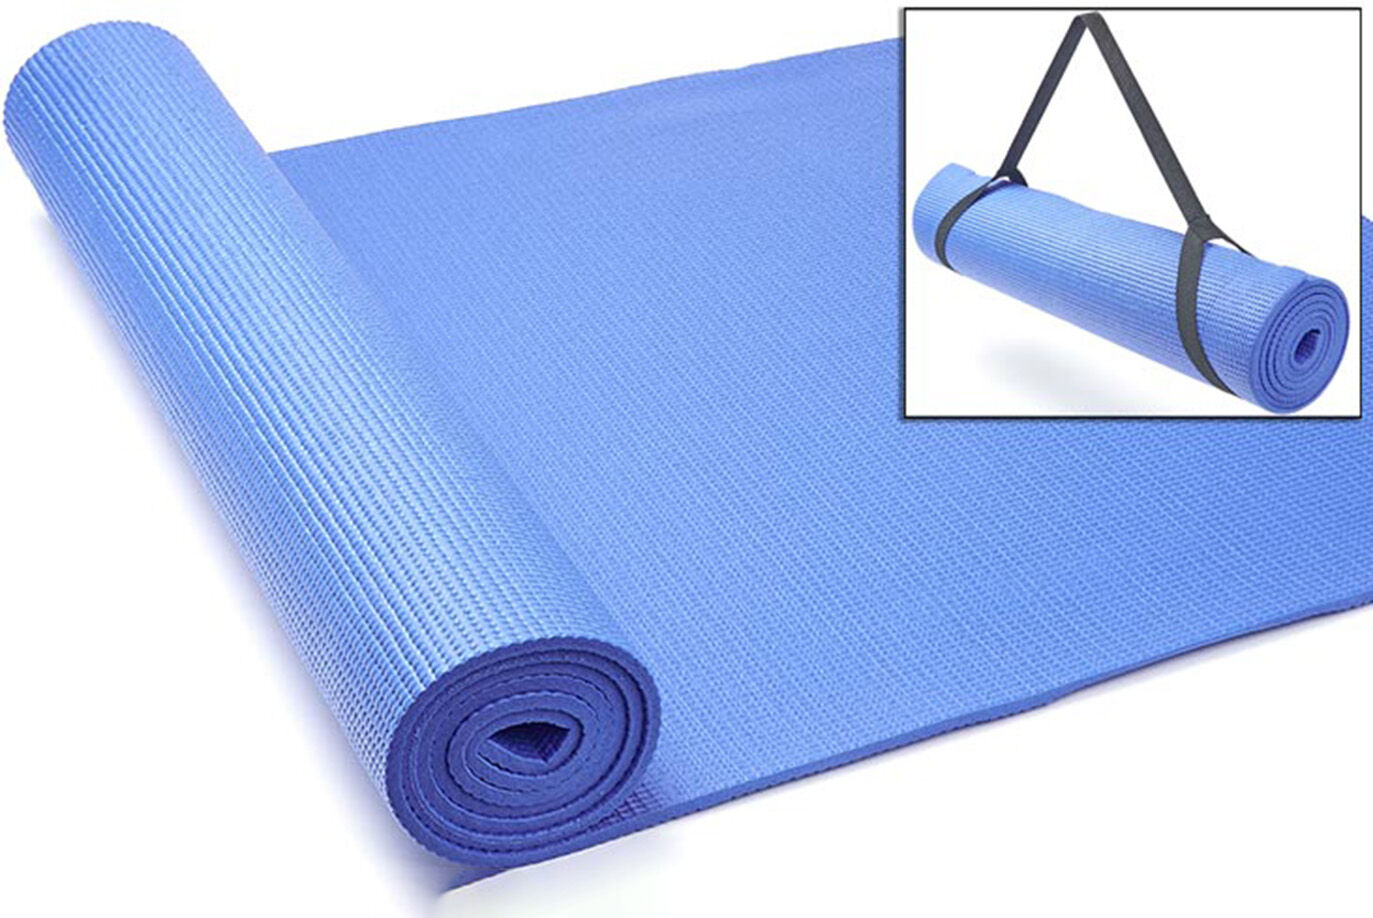 JTX Fitness Yoga Mat with Carry Strap